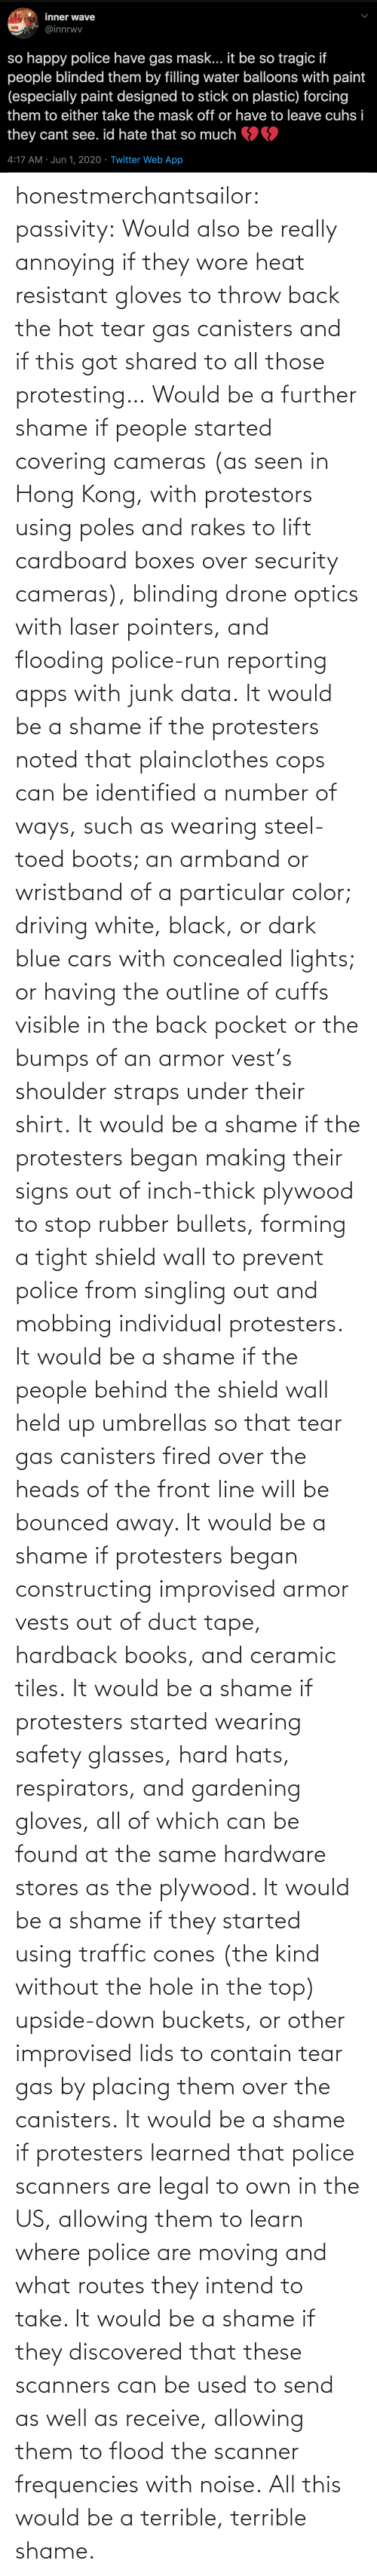 These: honestmerchantsailor:  passivity: Would also be really annoying if they wore heat resistant gloves to throw back the hot tear gas canisters and if this got shared to all those protesting… Would be a further shame if people started covering cameras (as seen in Hong Kong, with protestors using poles and rakes to lift cardboard boxes over security cameras), blinding drone optics with laser pointers, and flooding police-run reporting apps with junk data. It would be a shame if the protesters noted that plainclothes cops can be identified a number of ways, such as wearing steel-toed boots; an armband or wristband of a particular color; driving white, black, or dark blue cars with concealed lights; or having the outline of cuffs visible in the back pocket or the bumps of an armor vest's shoulder straps under their shirt. It would be a shame if the protesters began making their signs out of inch-thick plywood to stop rubber bullets, forming a tight shield wall to prevent police from singling out and mobbing individual protesters. It would be a shame if the people behind the shield wall held up umbrellas so that tear gas canisters fired over the heads of the front line will be bounced away. It would be a shame if protesters began constructing improvised armor vests out of duct tape, hardback books, and ceramic tiles. It would be a shame if protesters started wearing safety glasses, hard hats, respirators, and gardening gloves, all of which can be found at the same hardware stores as the plywood. It would be a shame if they started using traffic cones (the kind without the hole in the top) upside-down buckets, or other improvised lids to contain tear gas by placing them over the canisters. It would be a shame if protesters learned that police scanners are legal to own in the US, allowing them to learn where police are moving and what routes they intend to take. It would be a shame if they discovered that these scanners can be used to send as well as receive, allowing them to flood the scanner frequencies with noise. All this would be a terrible, terrible shame.